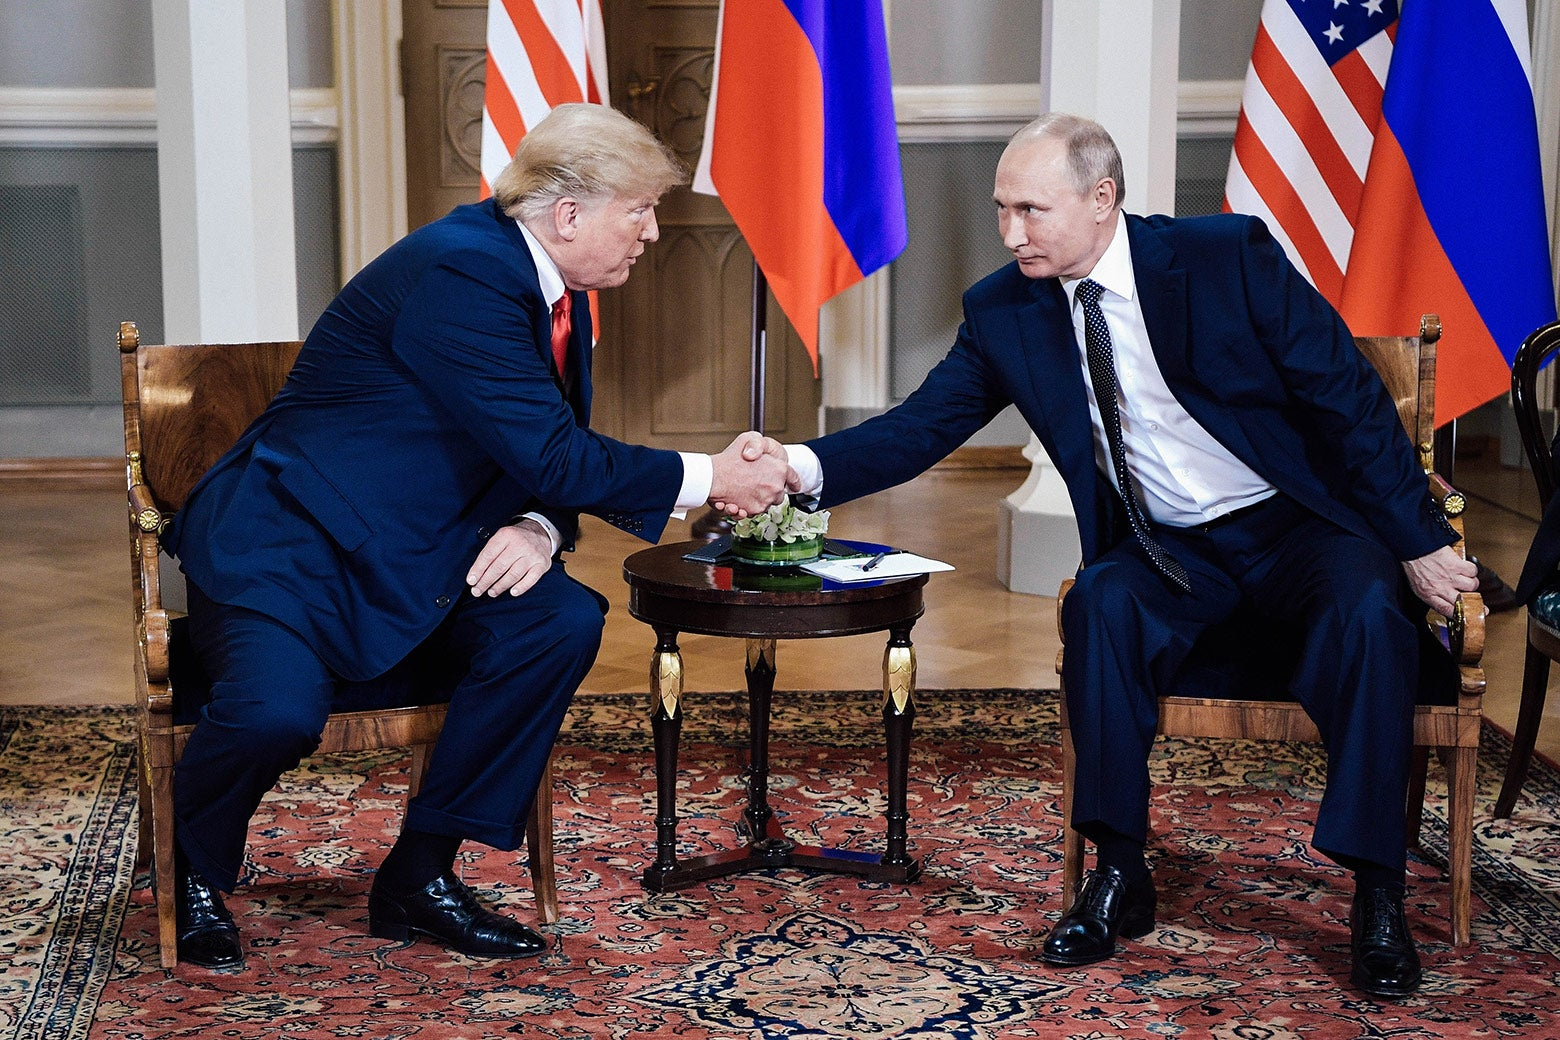 President Donald Trump shakes hands with Russia's President Vladimir Putin during a meeting in Helsinki, Finland, on Monday.